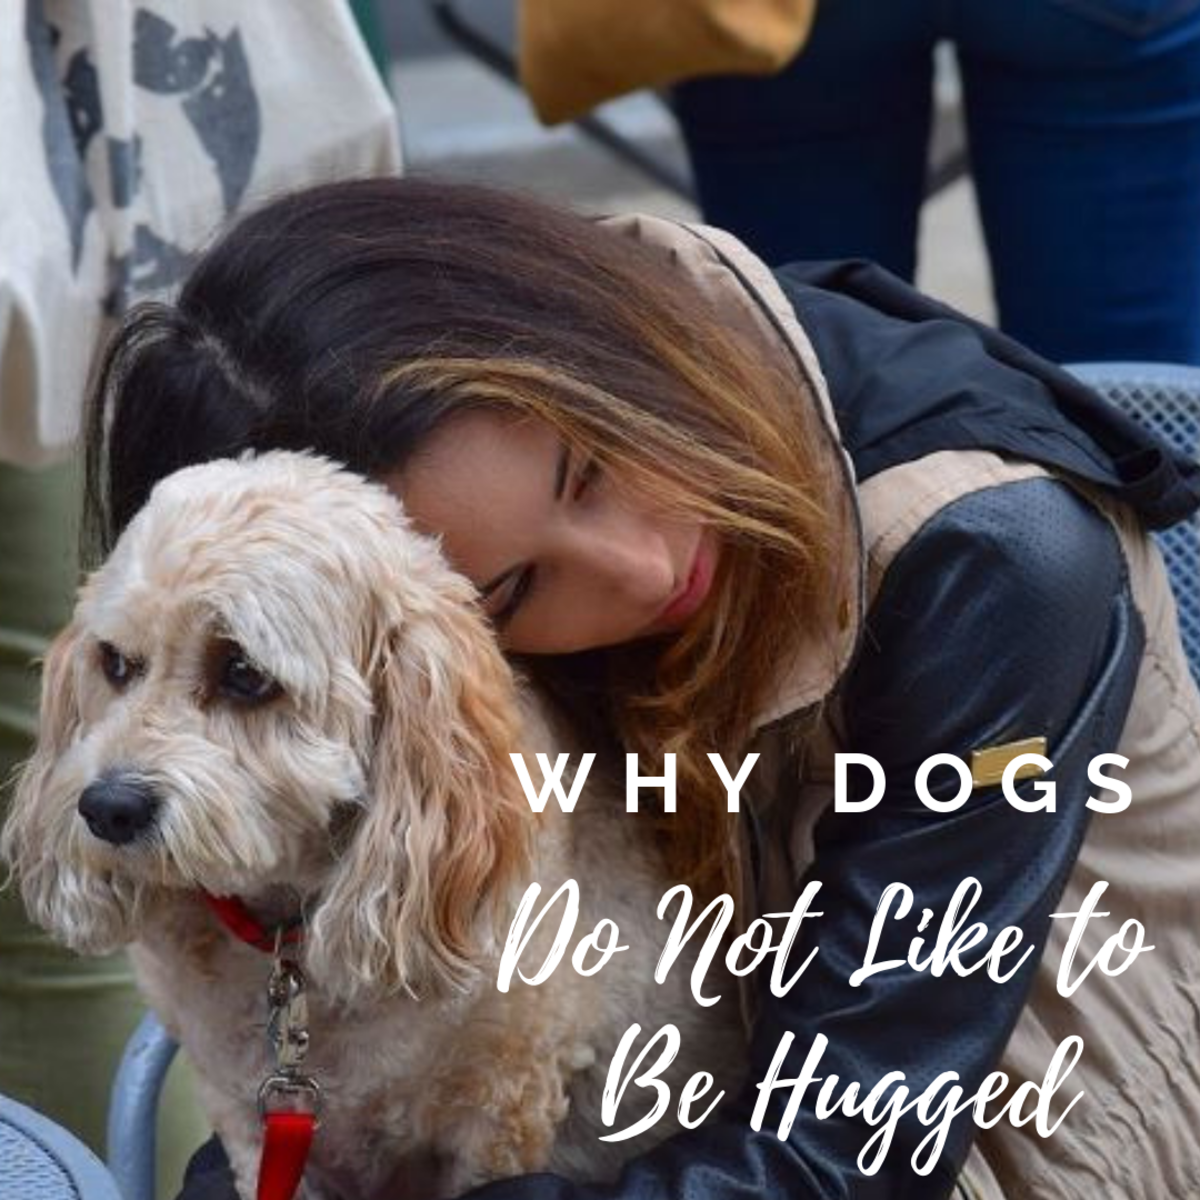 why-dogs-do-not-like-to-be-hugged